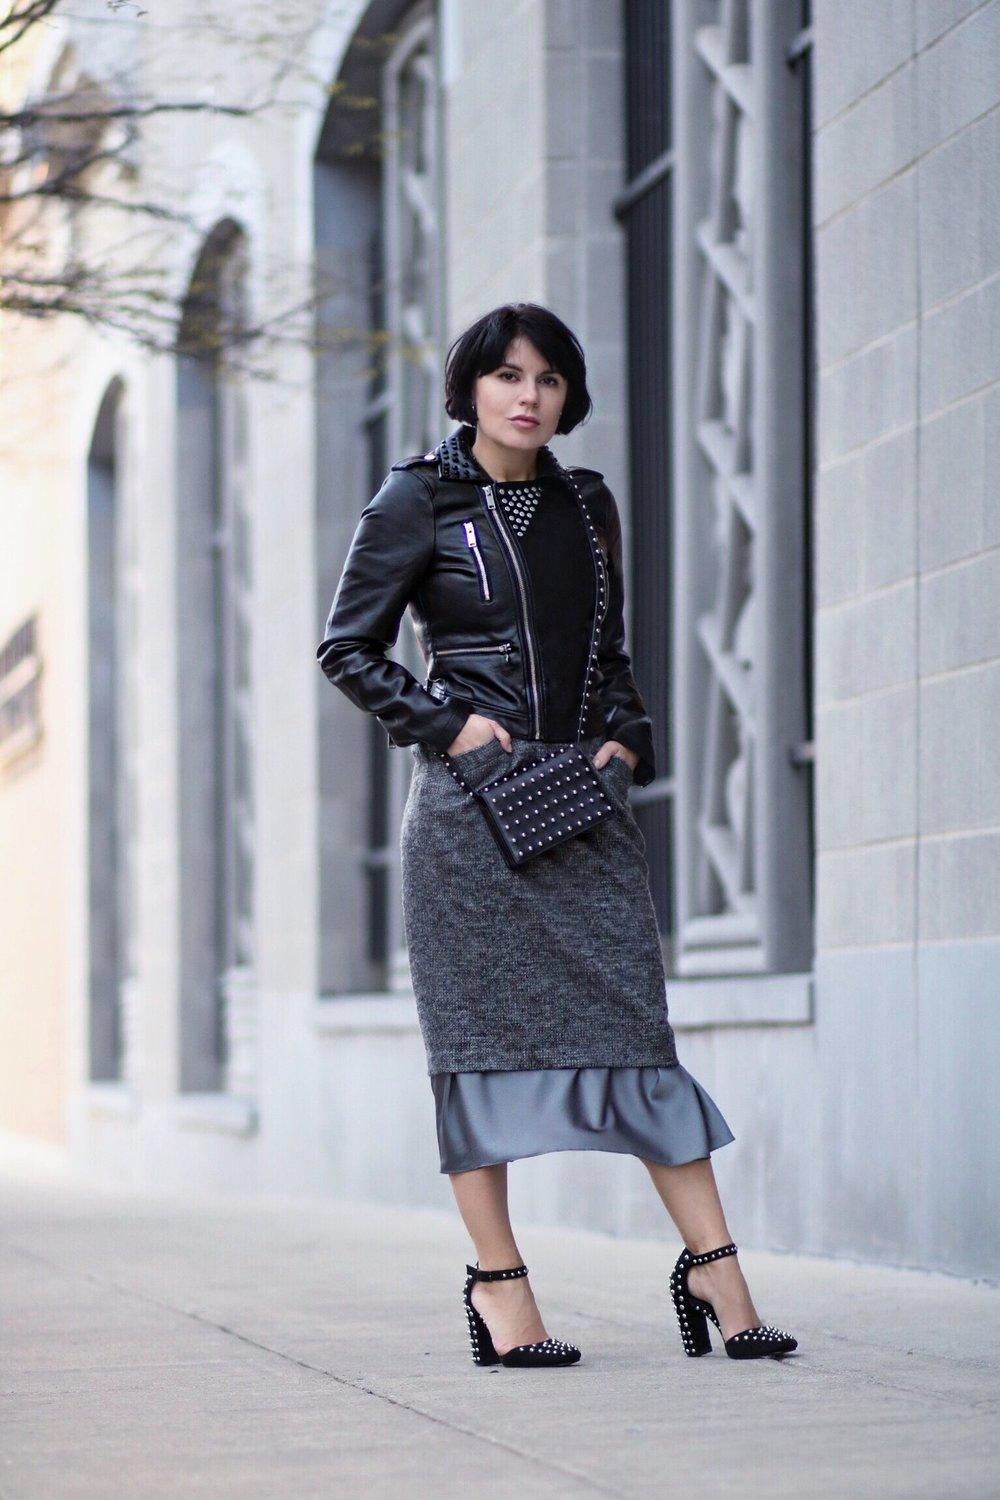 Alexander Wang studded bag blogger style